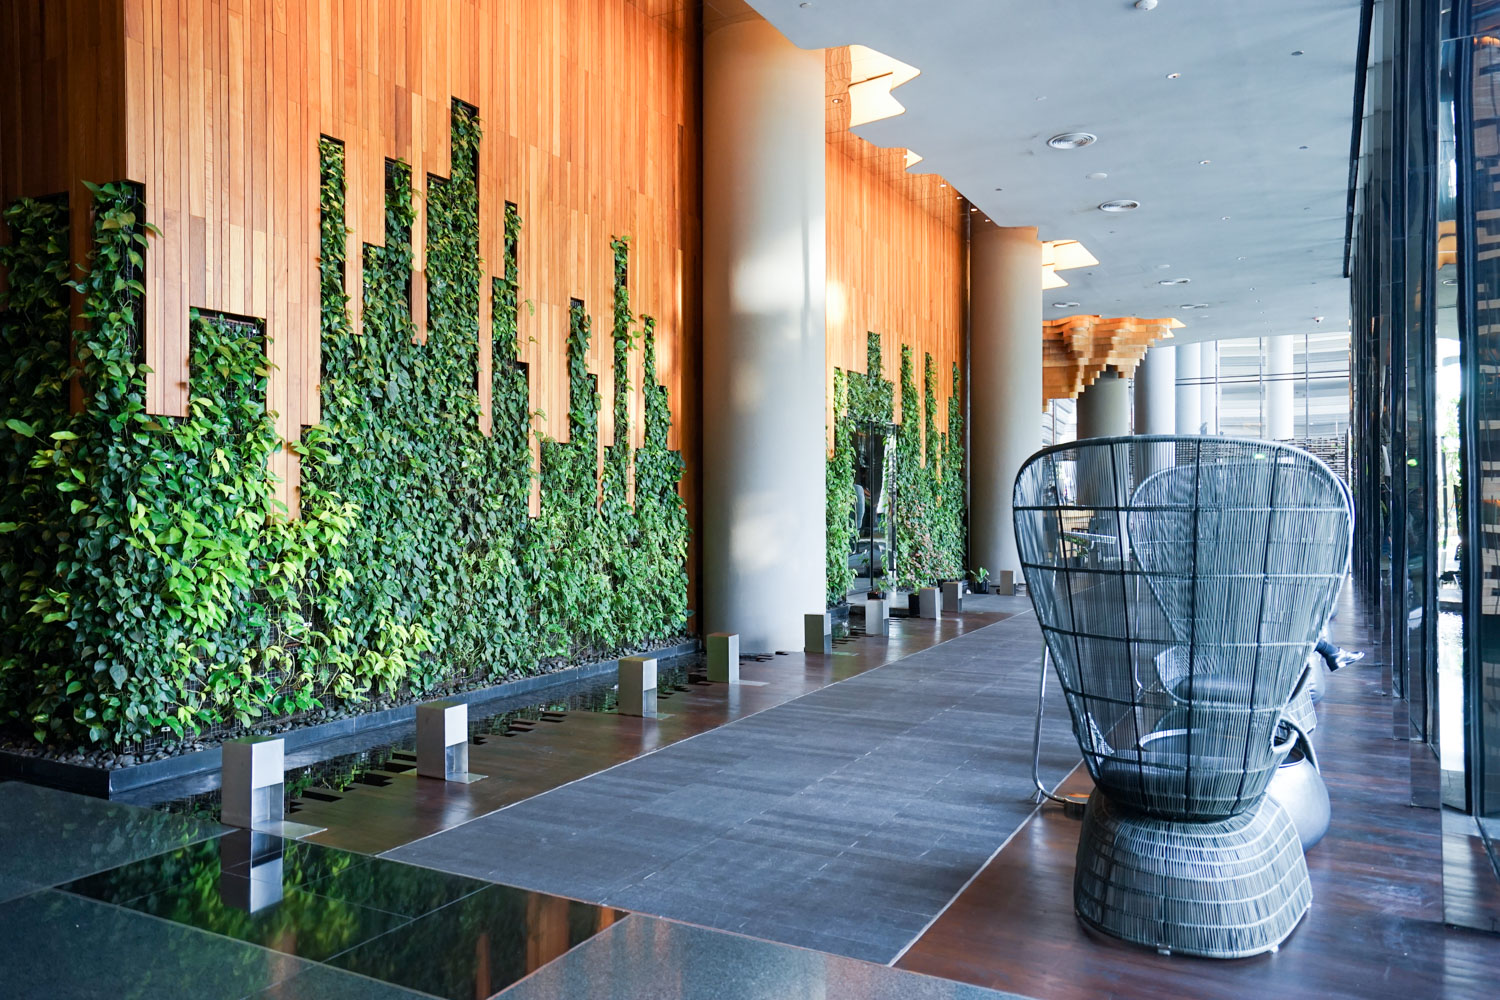 Parkroyal on pickering review a well designed for Sustainable hotel design